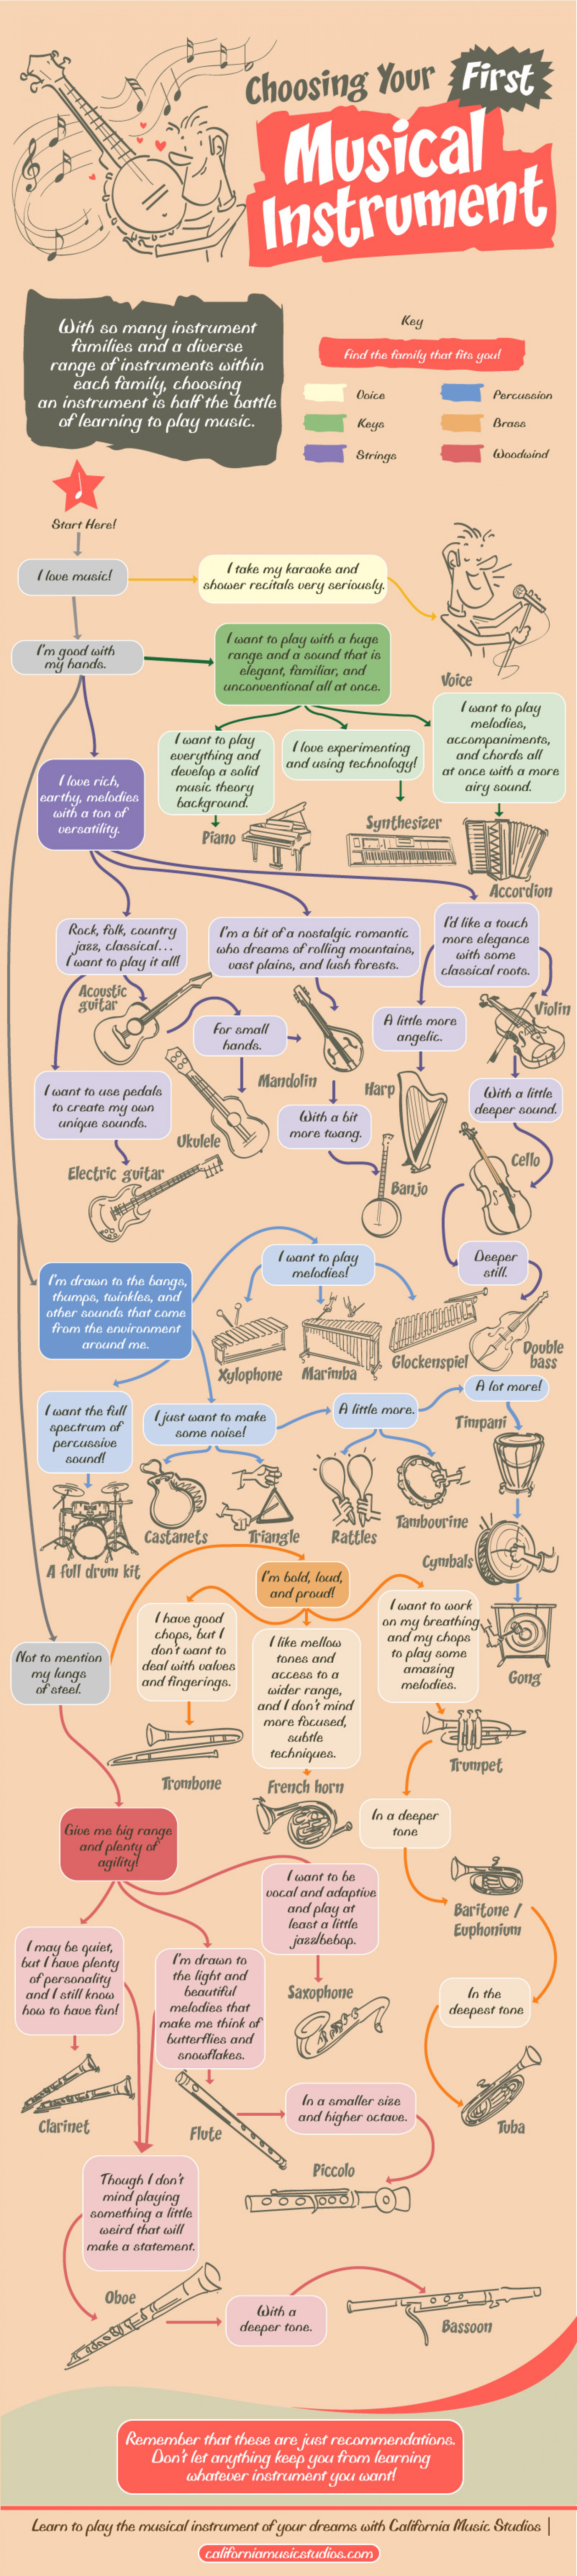 Choosing Your First Musical Instrument Infographic